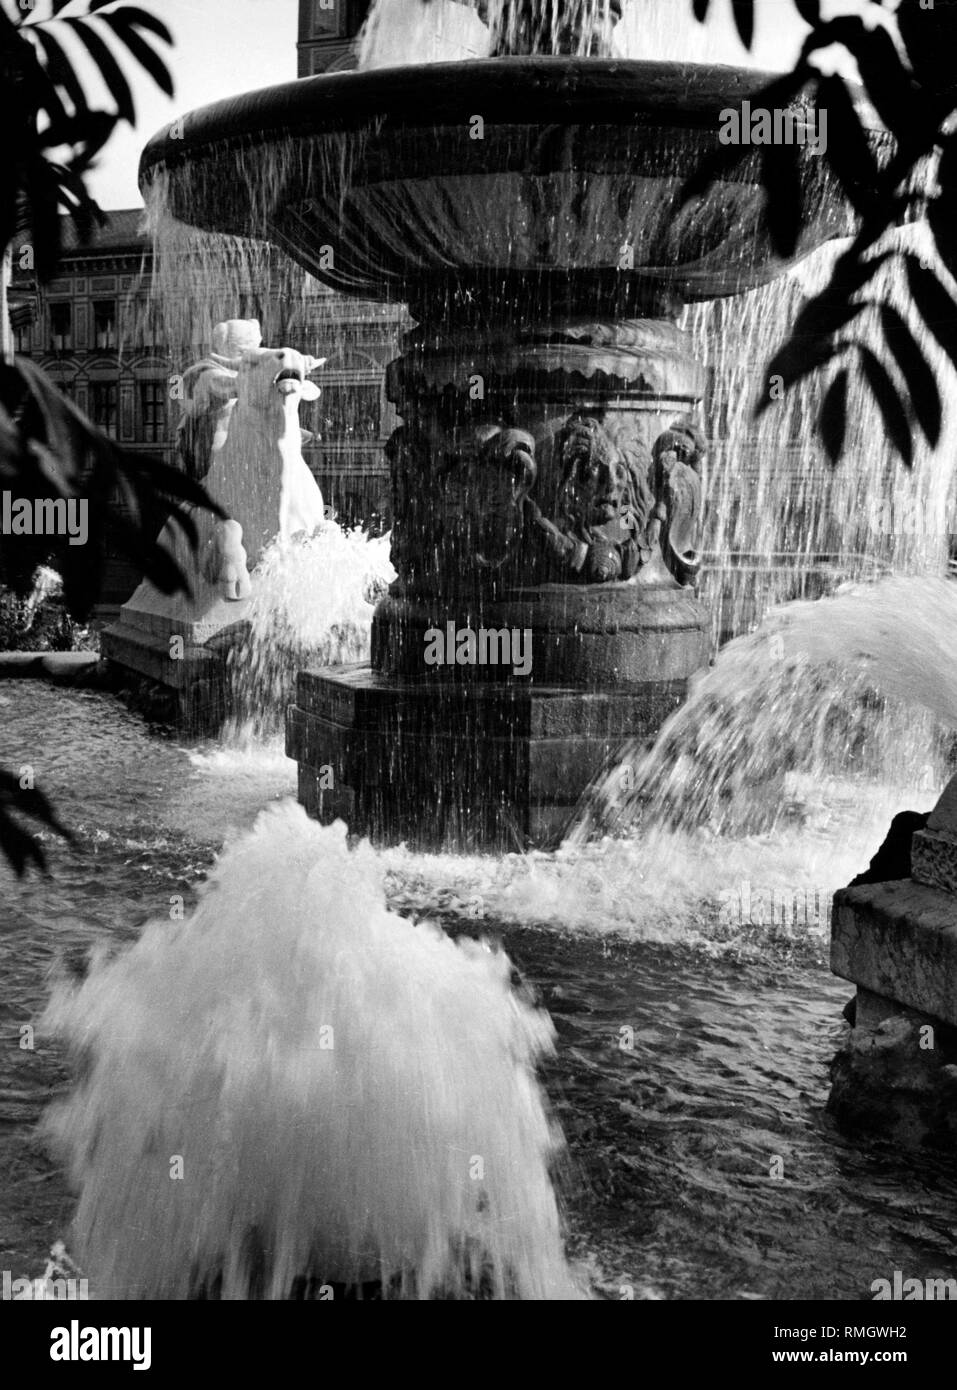 The Wittelsbacher Brunnen (fountain) at the Lenbachplatz in Munich. On the left-hand side a man on a horse. - Stock Image